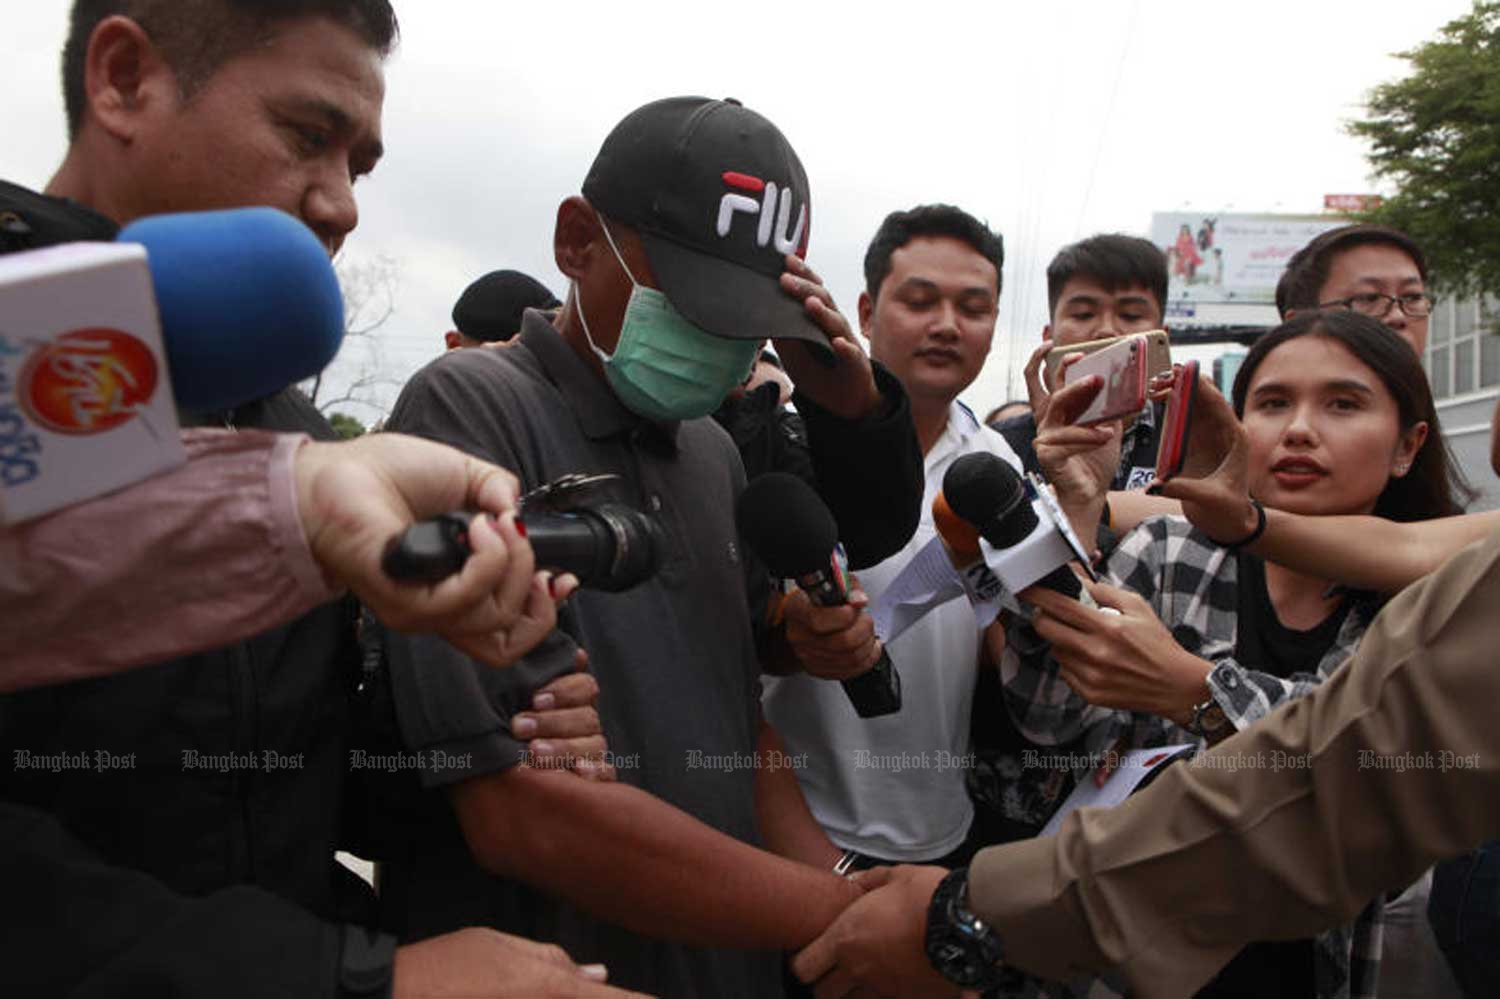 Police bring Samruai Chitchuen to a press conference in Bangkok after he was arrested for raping a 12-year-old girl who was his neighbour in Ramkhamhaeng area of Bangkok in February. (Photo by Pornprom Satrabhaya)